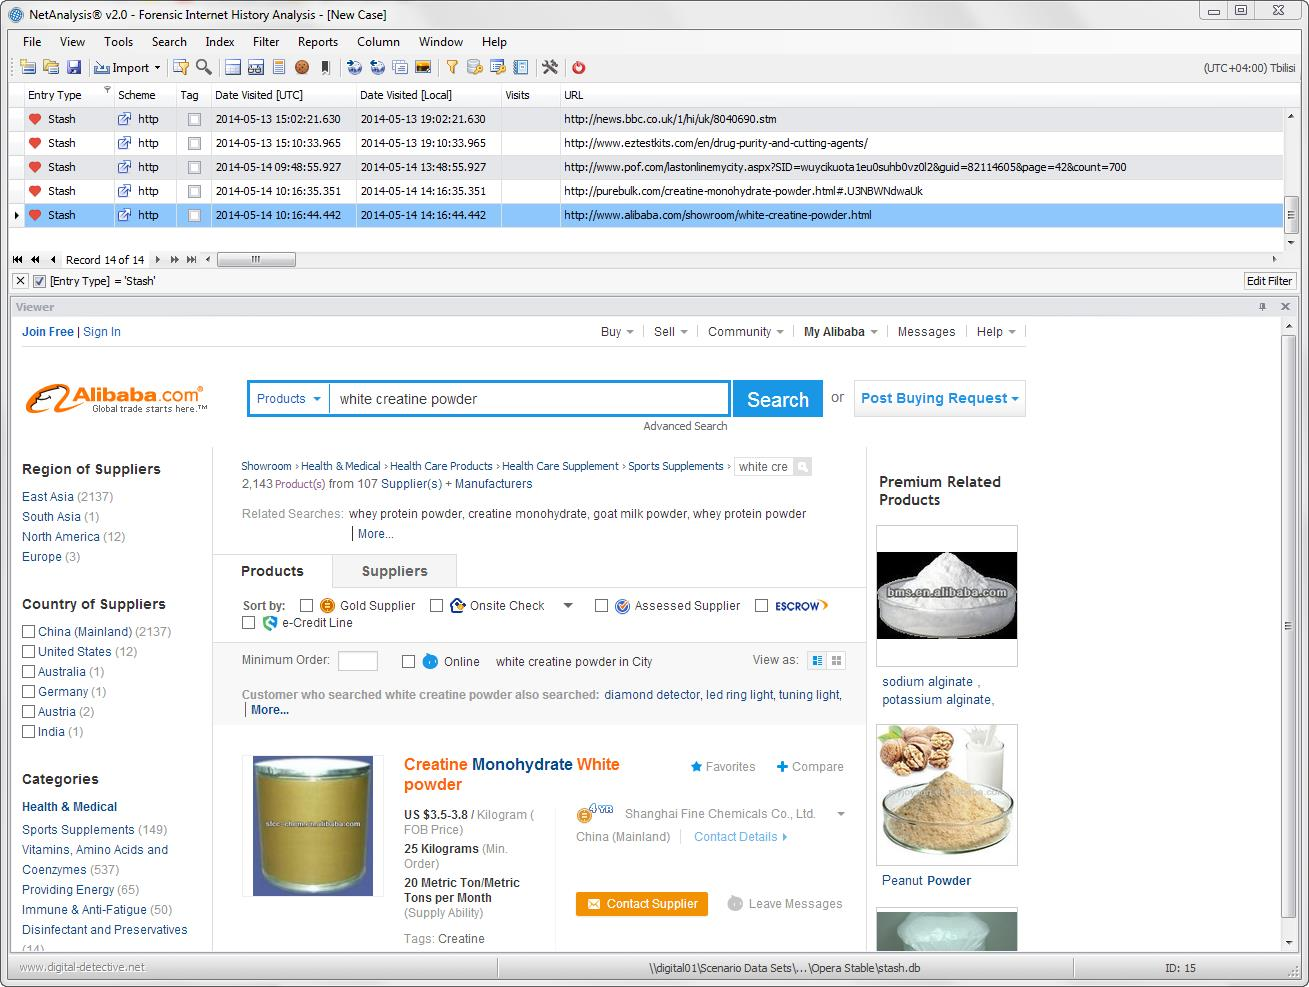 Digital Detective NetAnalysis® showing an Opera Stash entry with web site preview